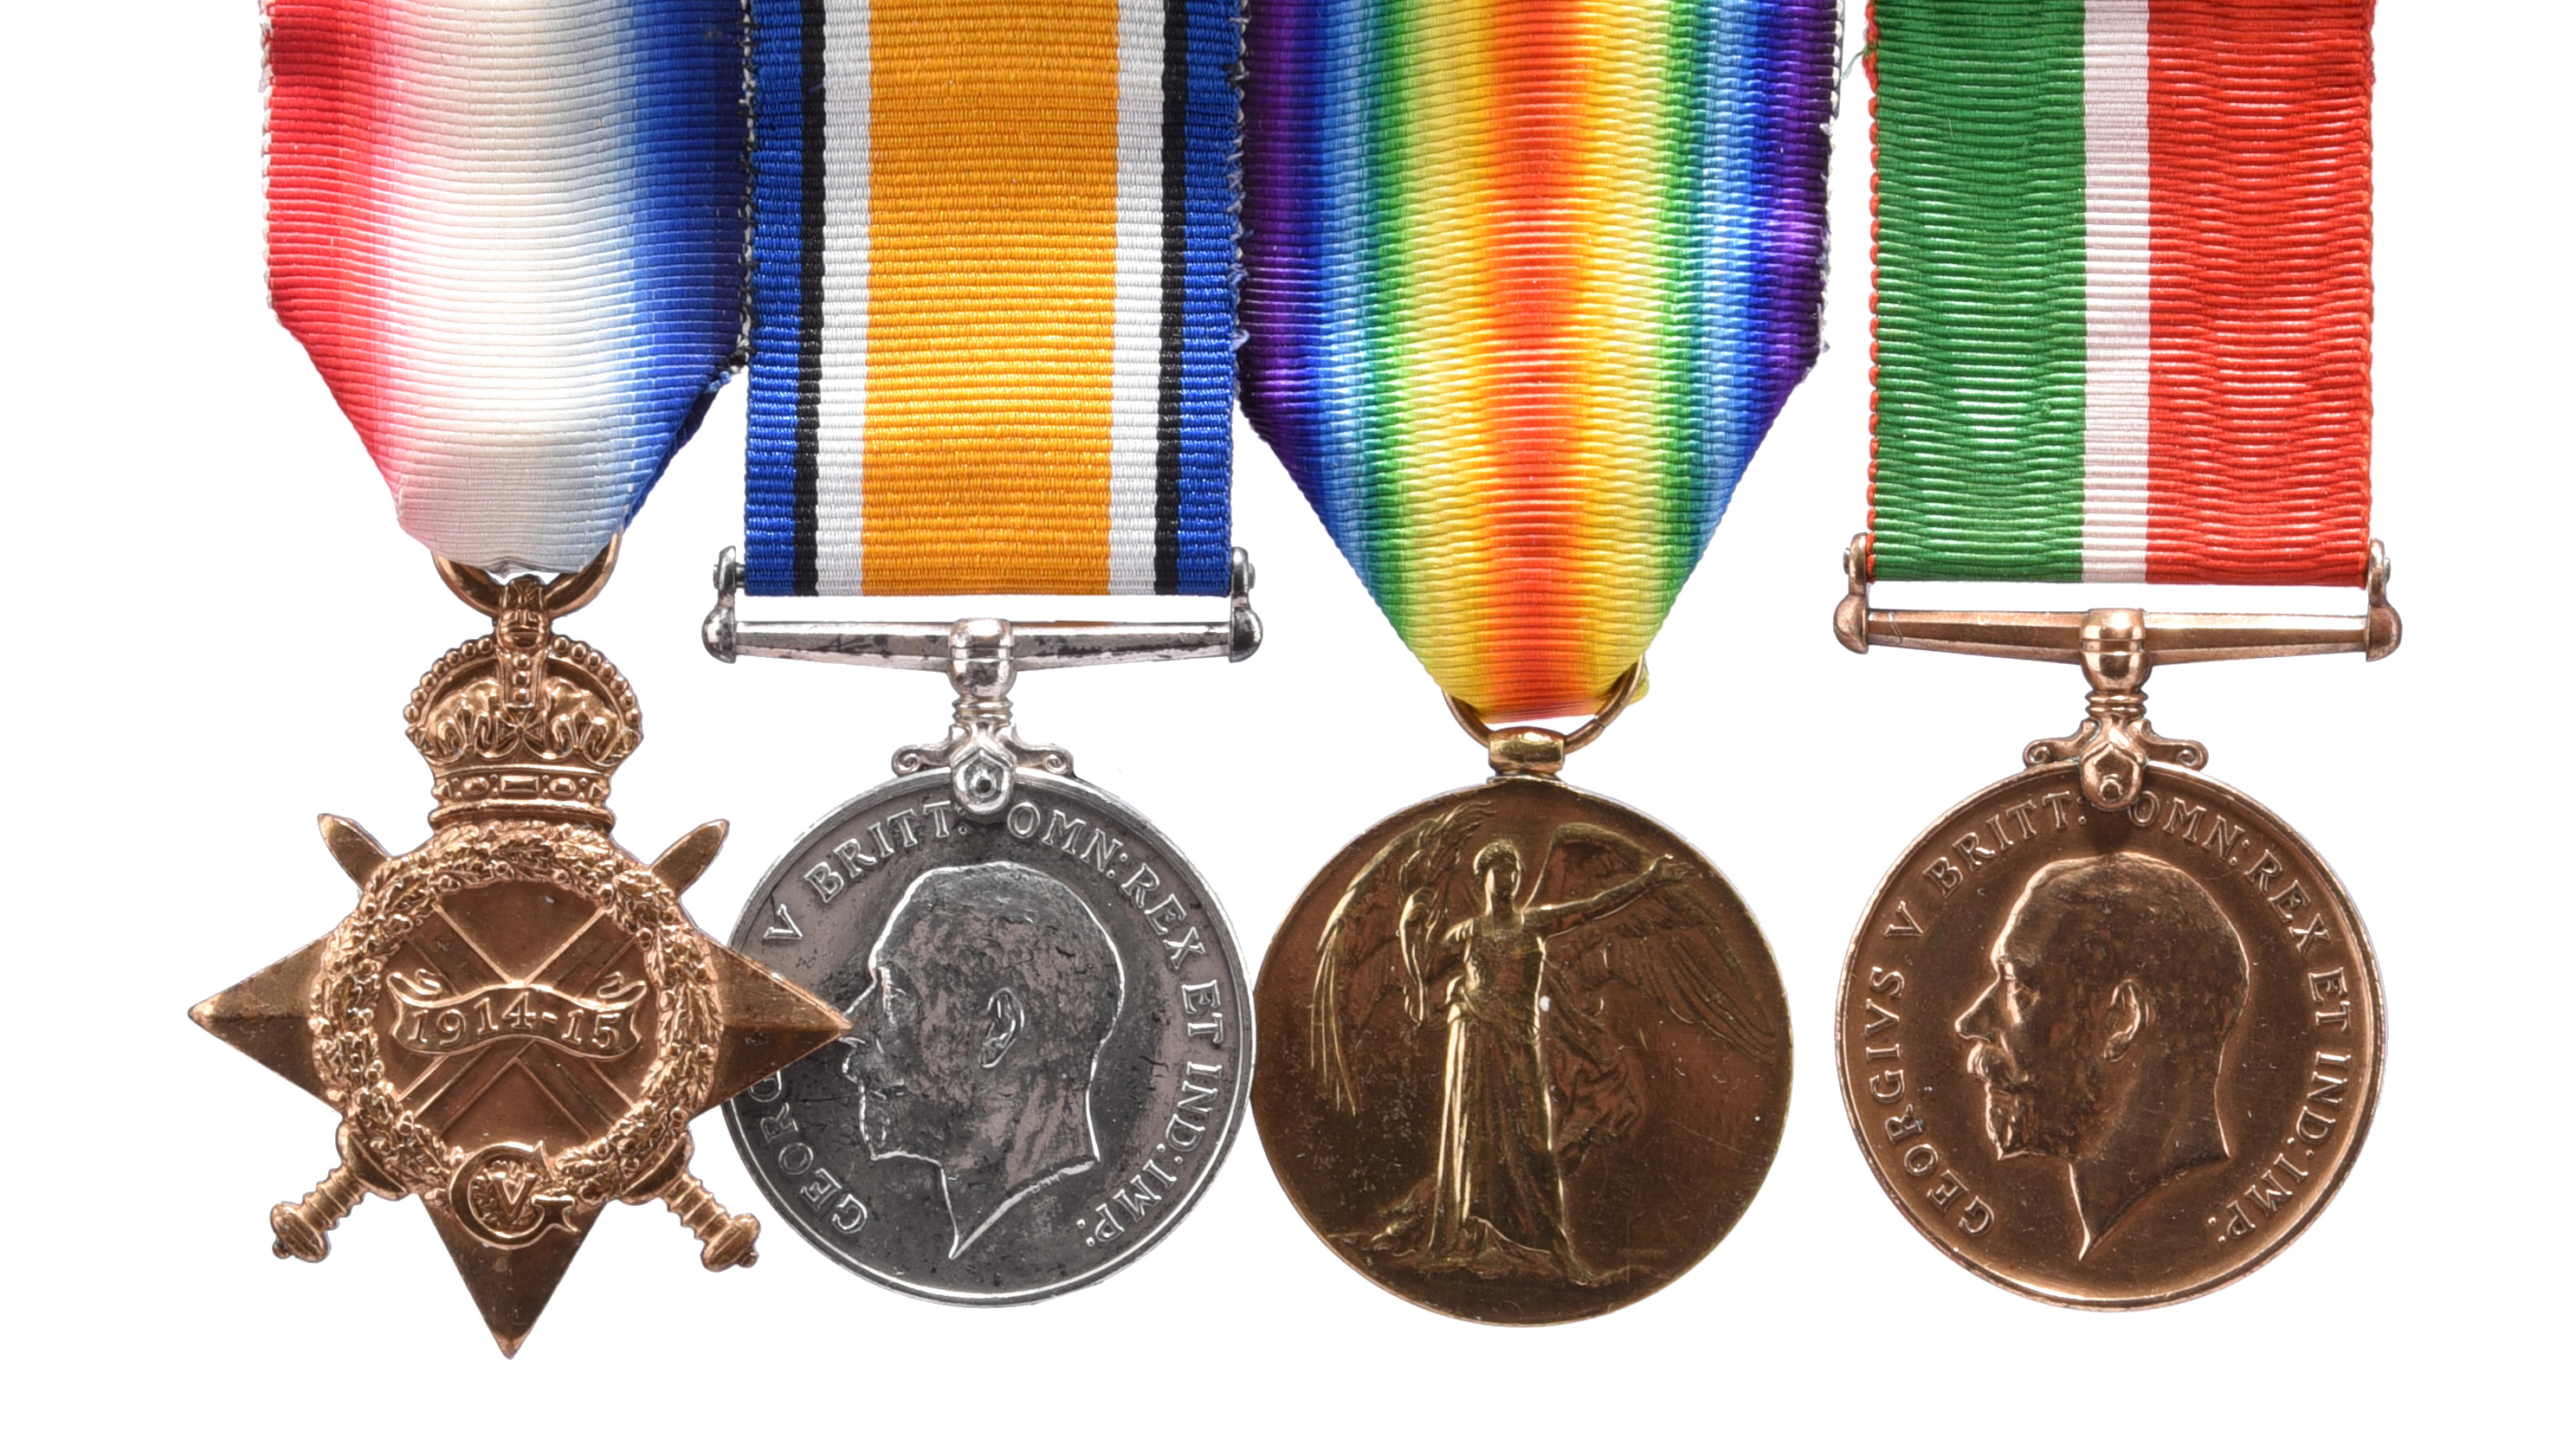 A Great War casualty Mercantile Marine War Medal to Frank Axel Rodman, S S Mordenwood (Frank A.